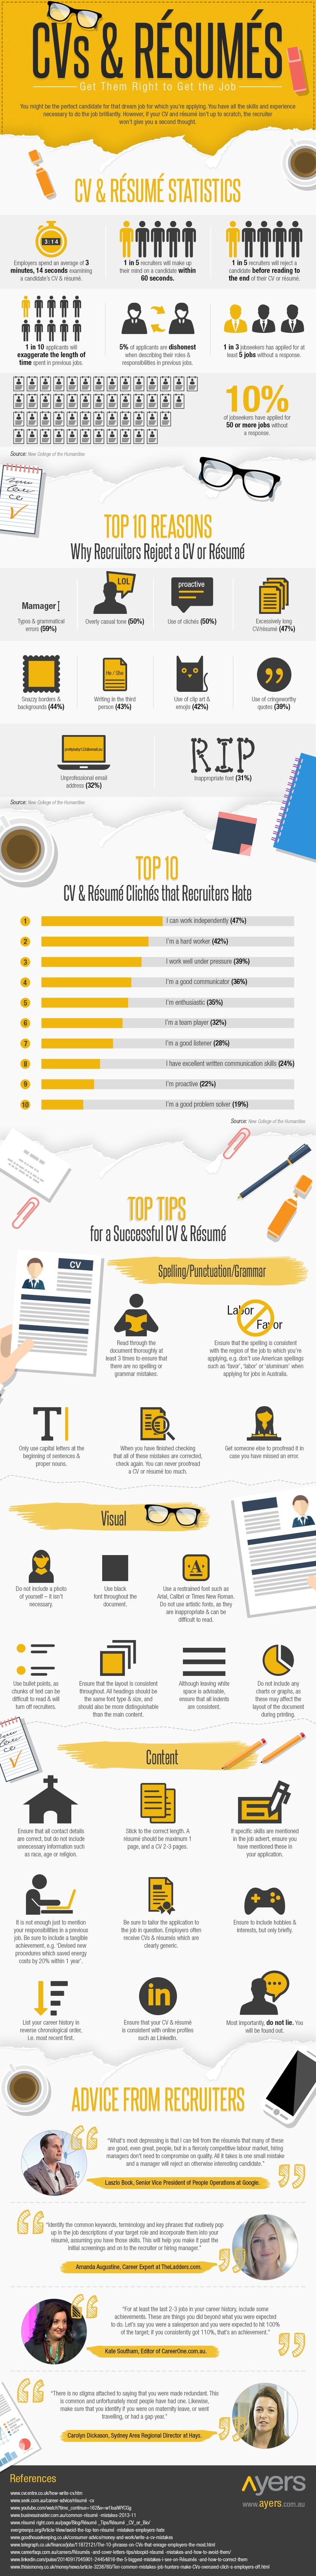 1000 ideas about resume examples on pinterest best resume